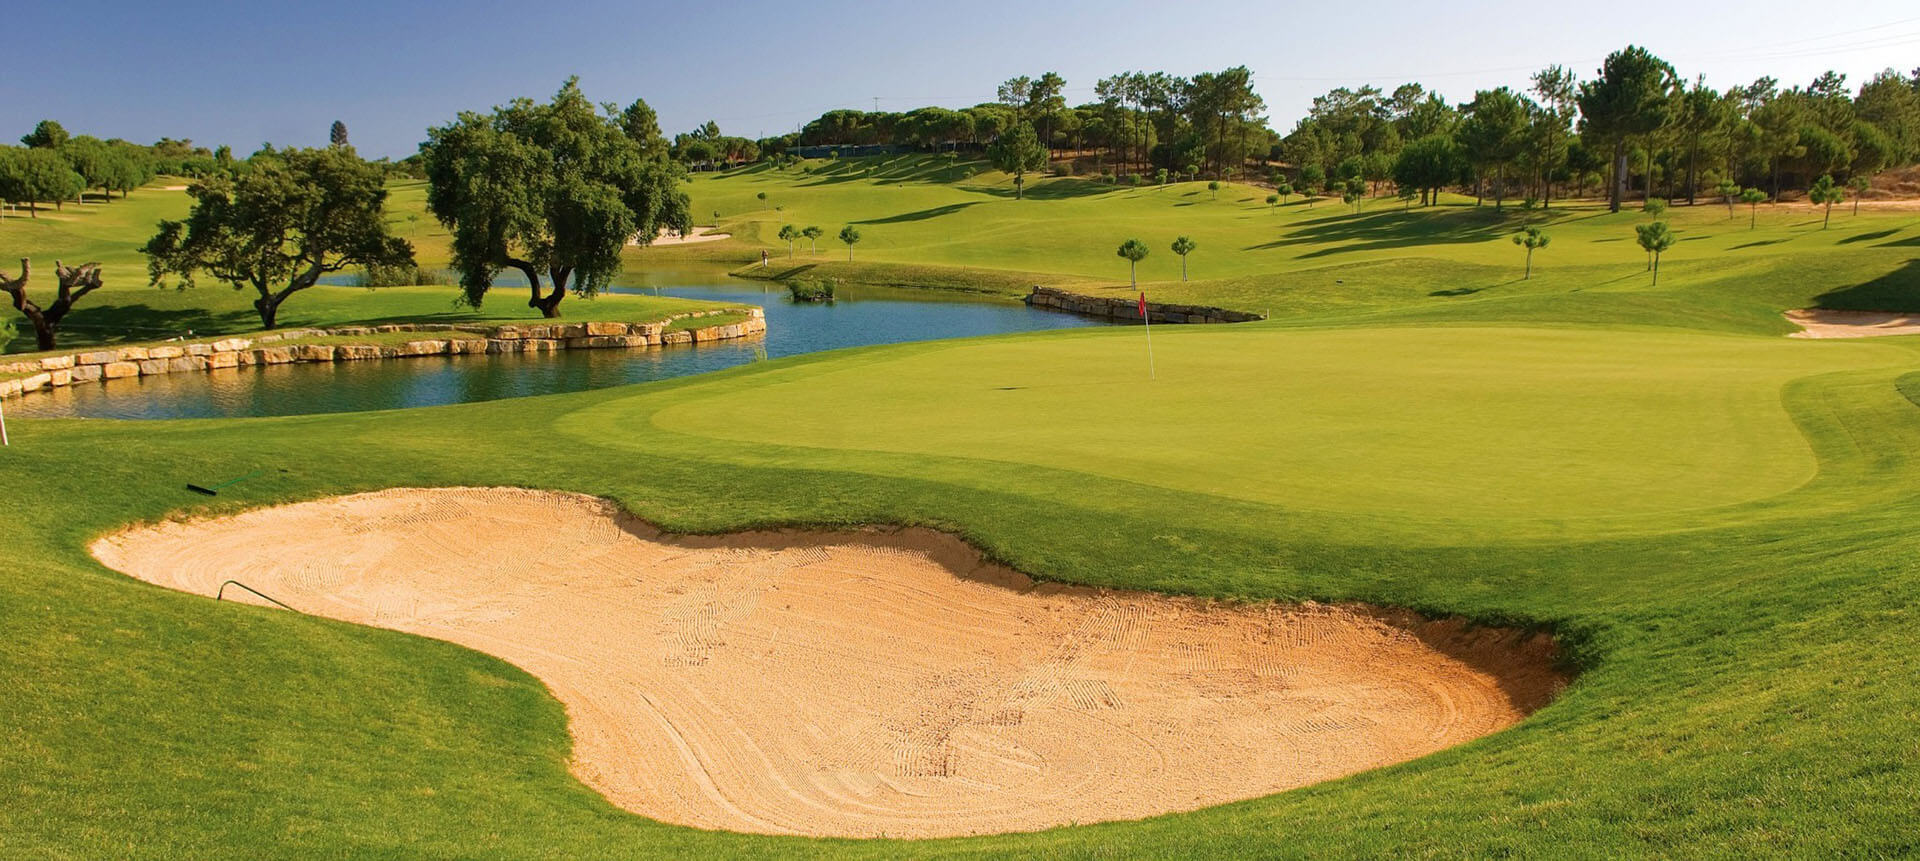 Golf Holidays Latest News and Events